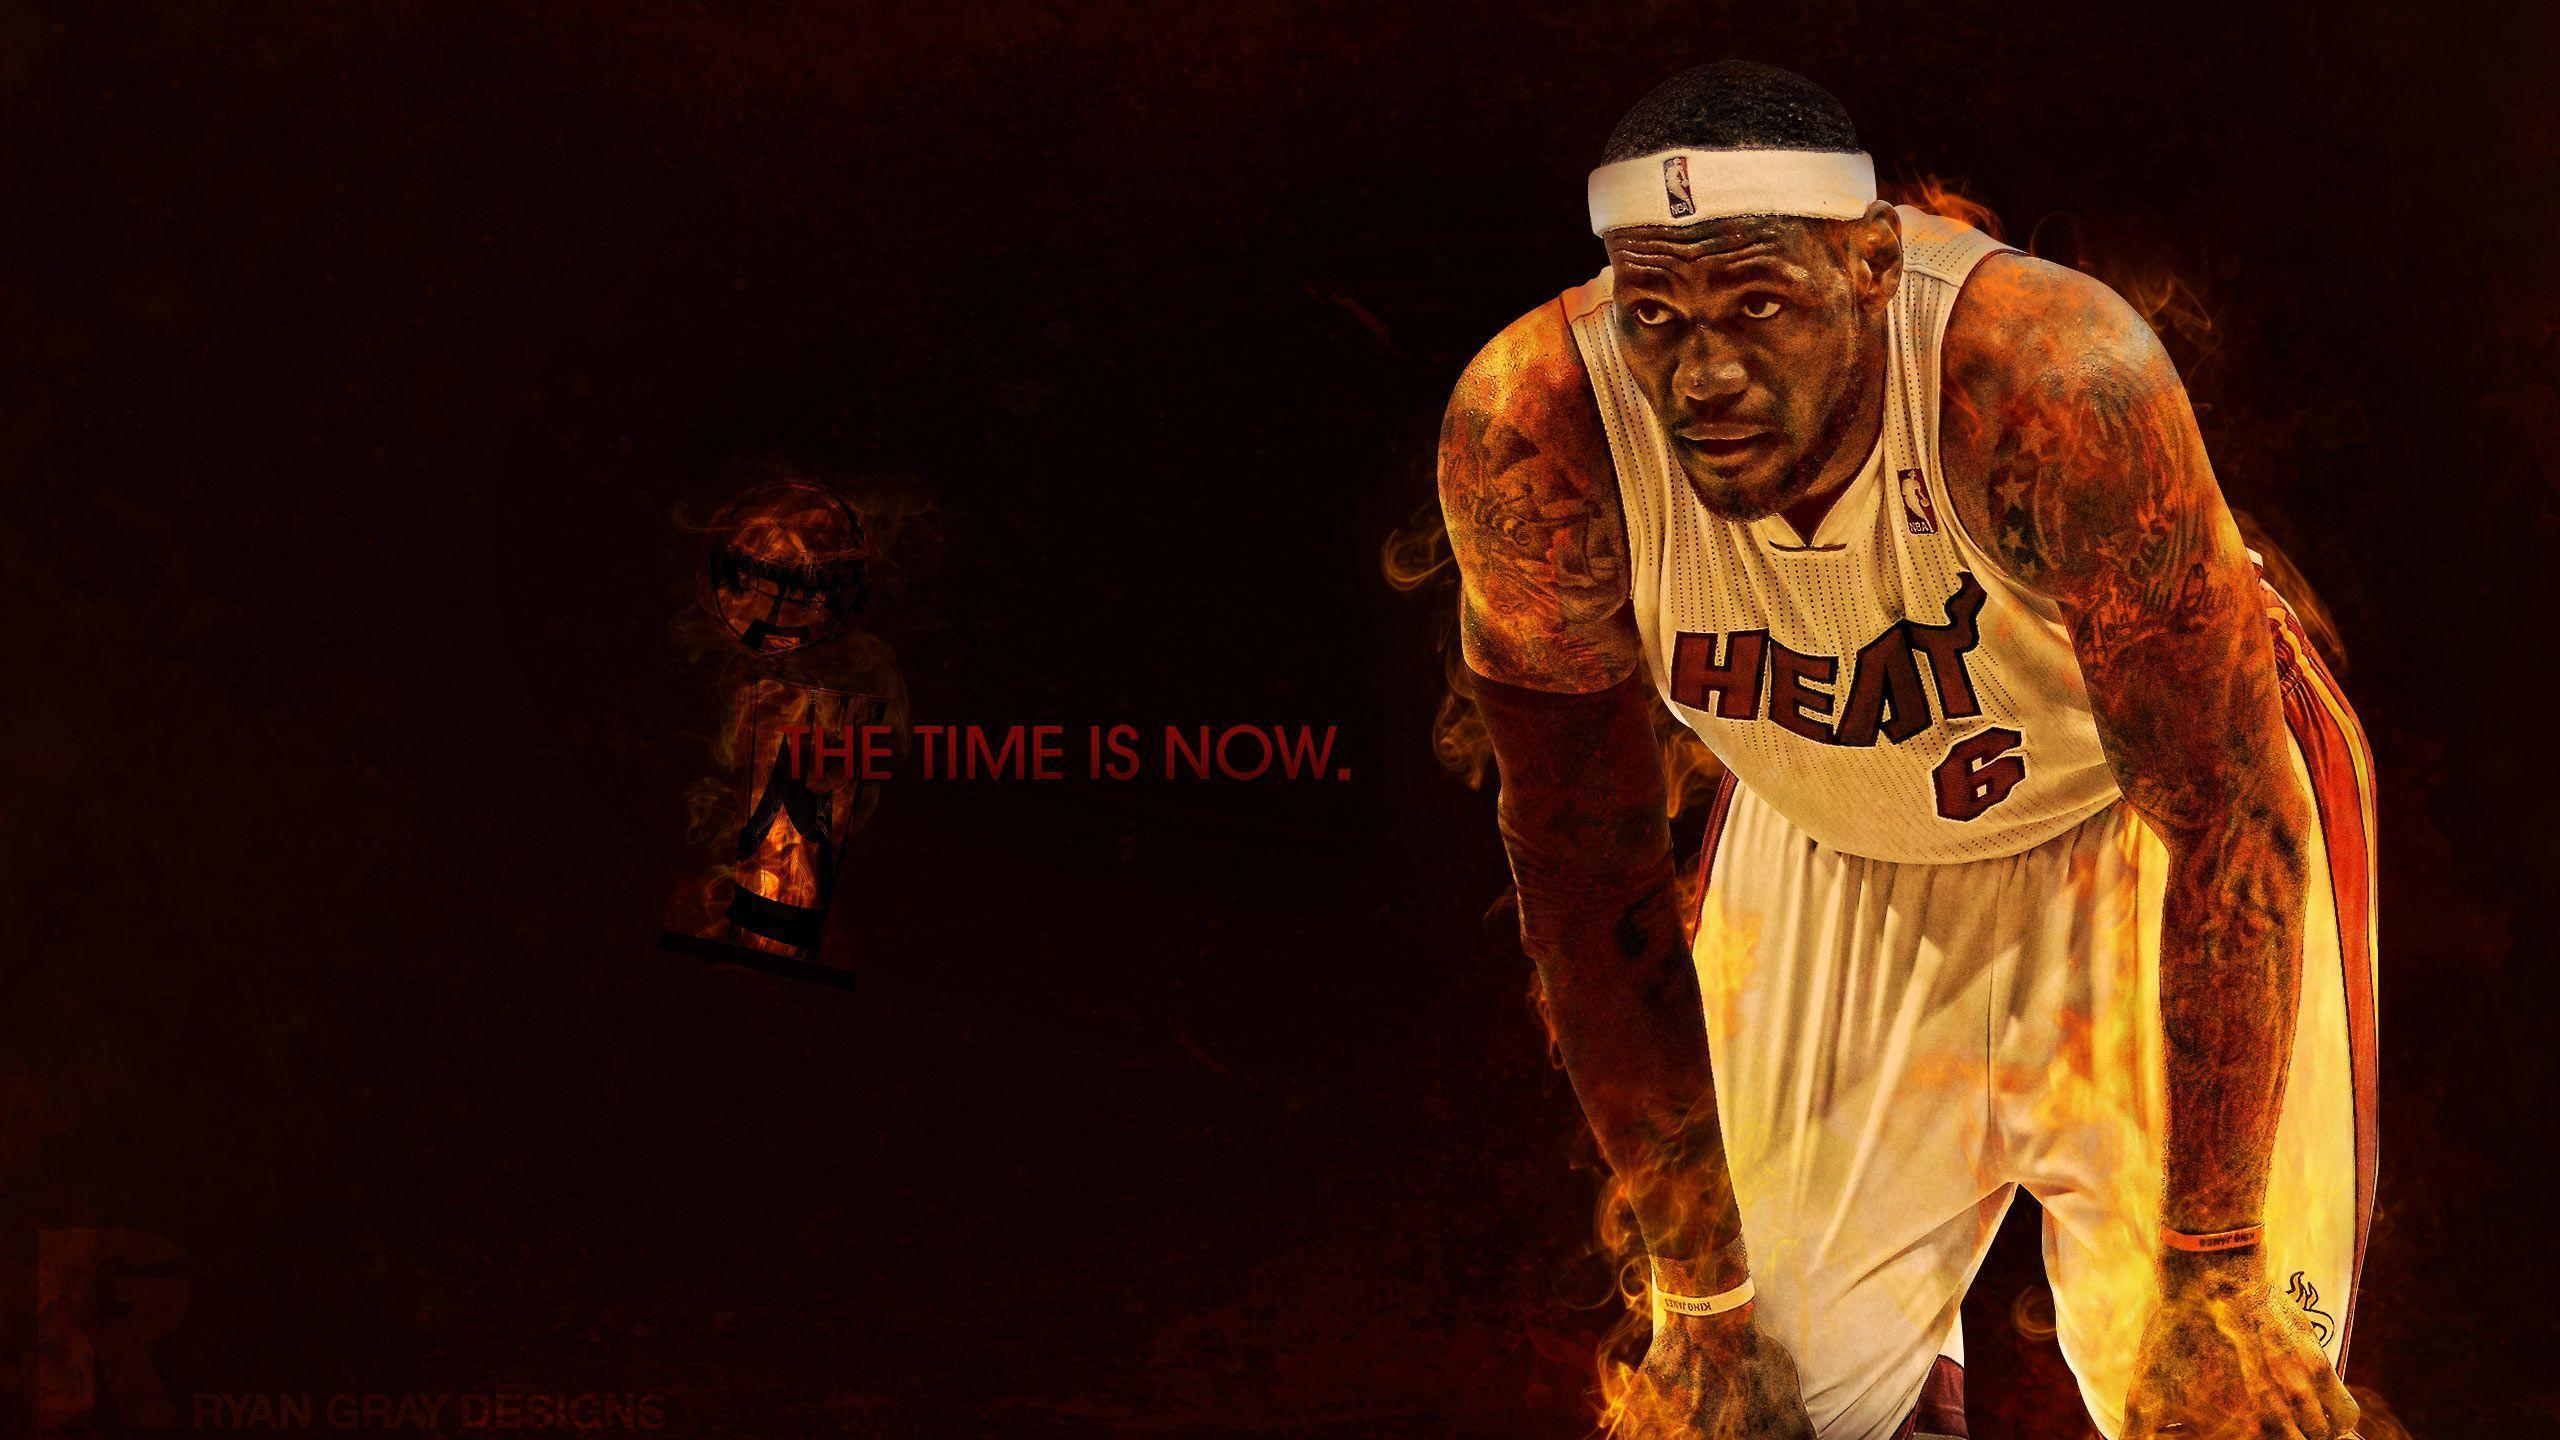 Lebron James Cleveland Wallpapers | PixelsTalk.Net